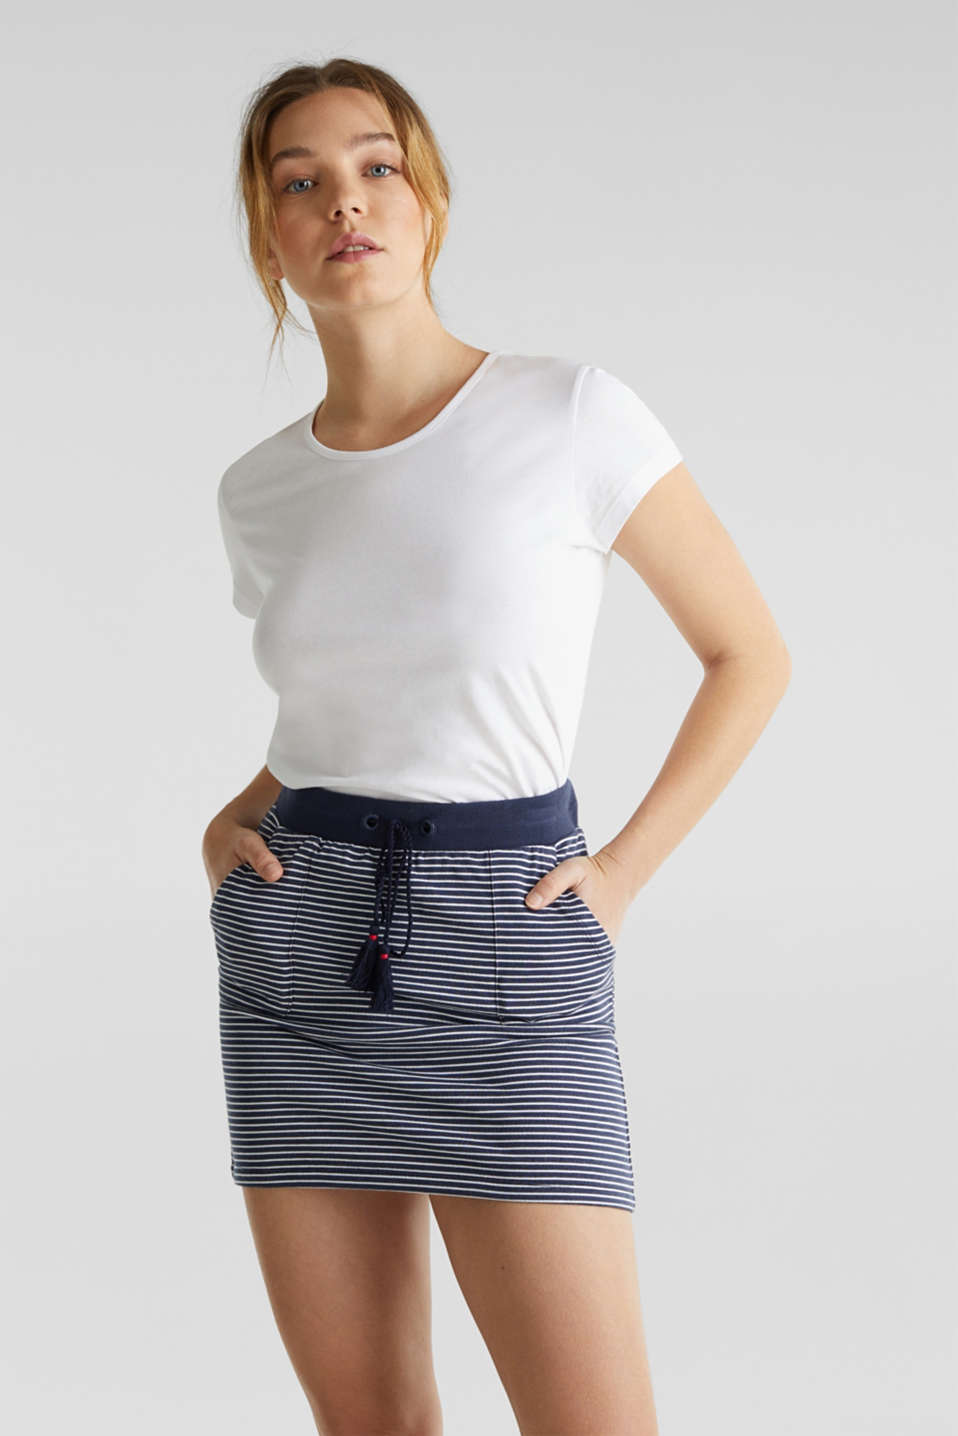 Esprit - Jersey skirt made of 100% cotton